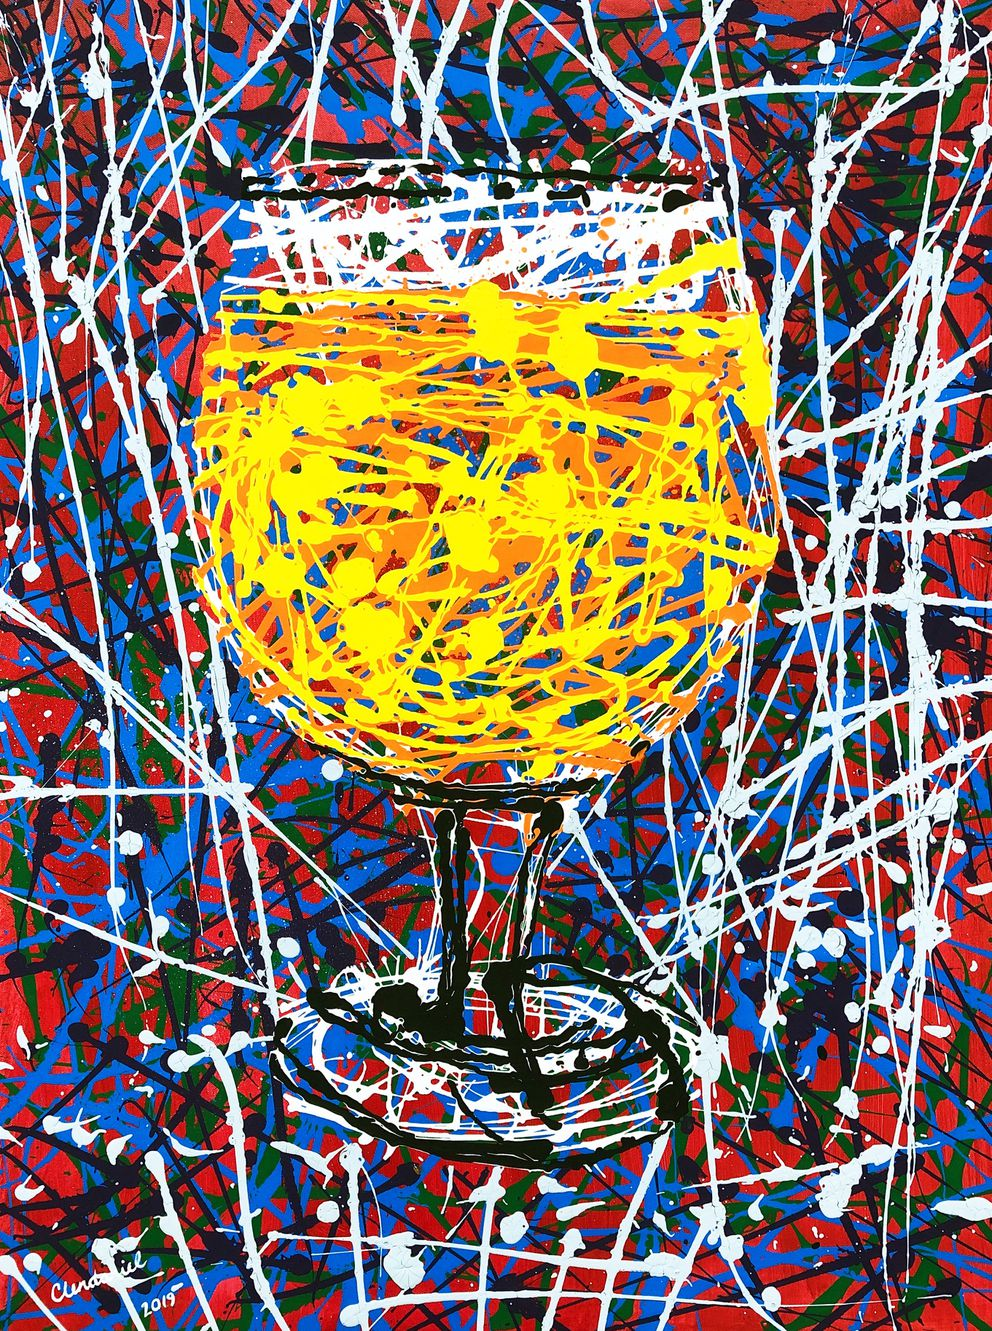 Inspired by Jackson Pollock, but with a beer twist. 30 'x40 ', acrylic on canvas. Join Turnagain Brewing for the art opening on Friday, March 1, 5-8 p.m. The paintings and limited-edition prints will be on display and available for sale at the brewery until April 4.